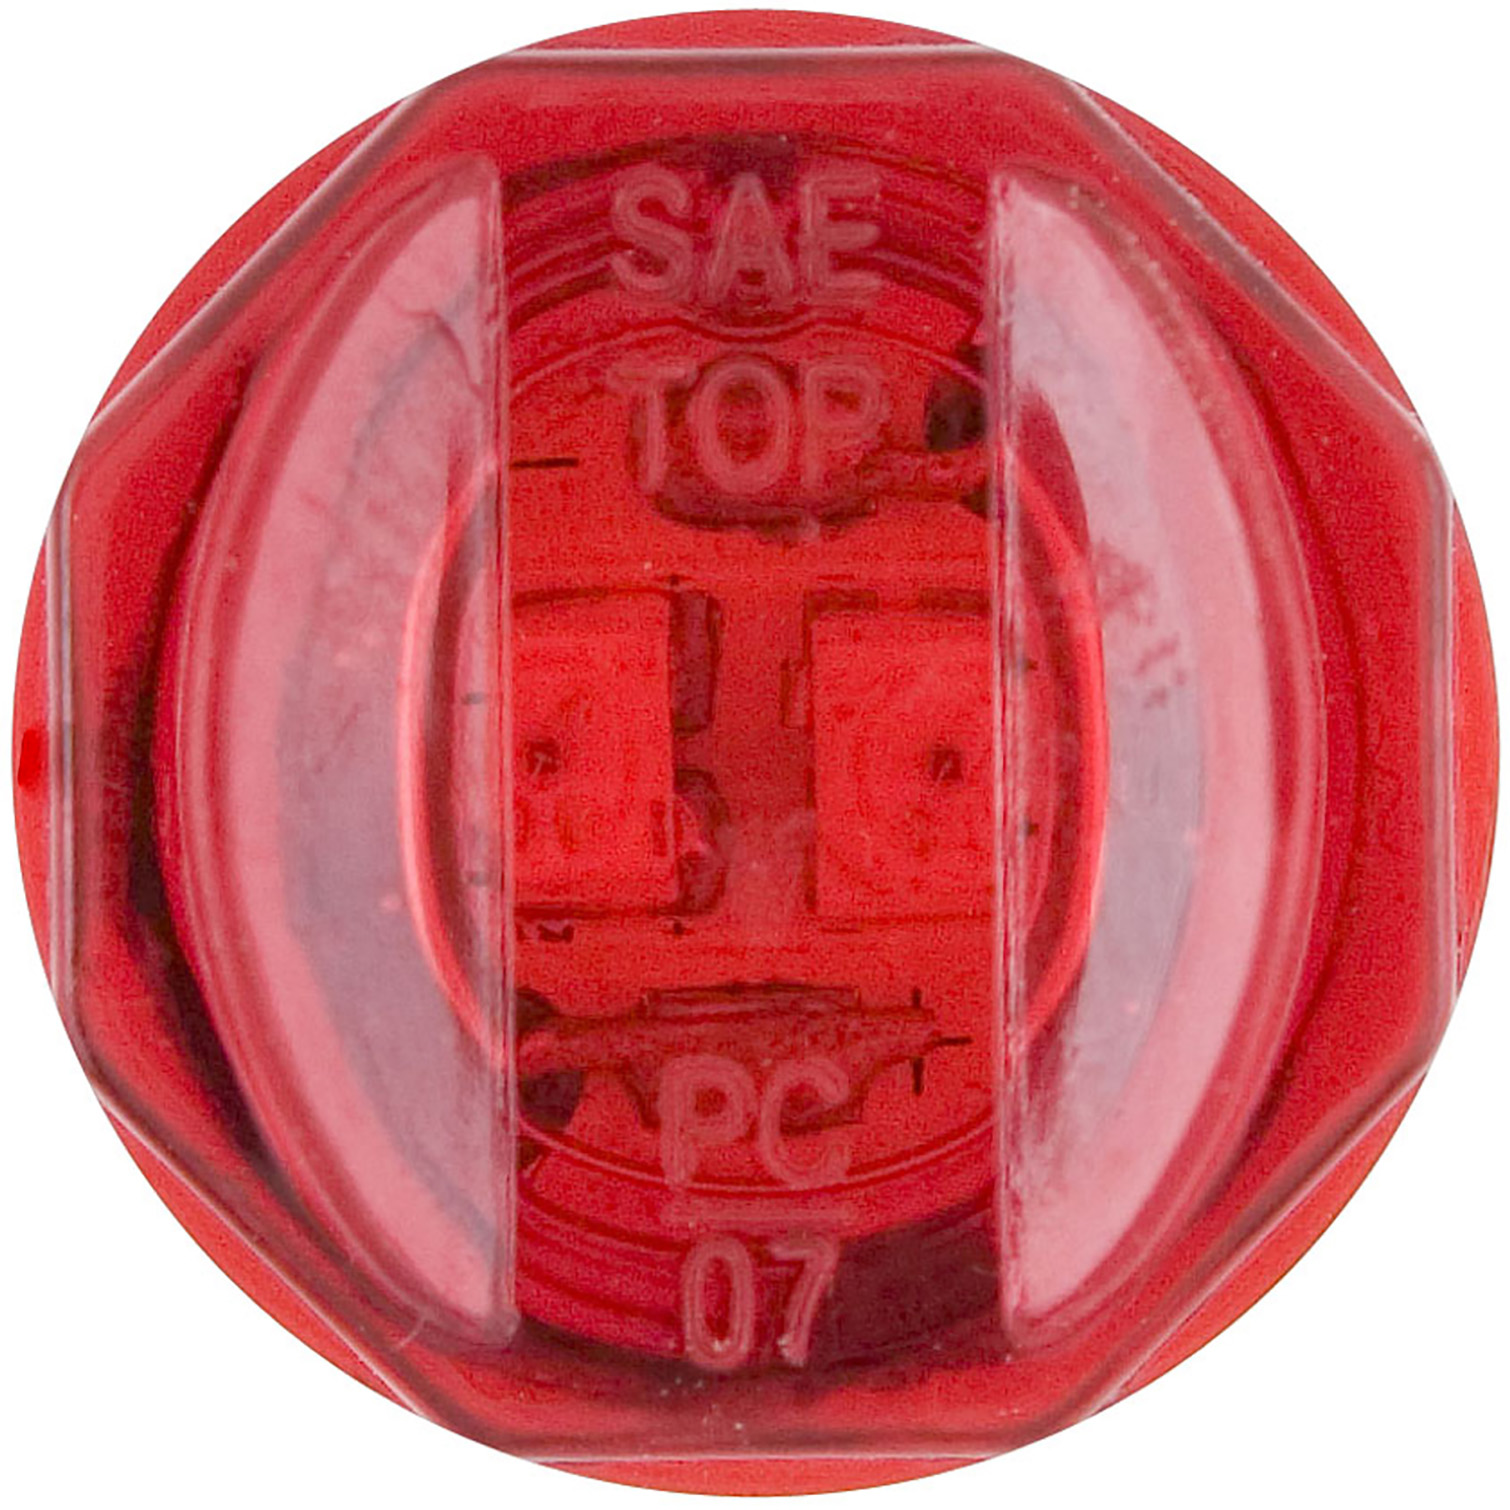 MCL11RB_OPTRONICS MCL11RB Red 0.75 in. PC Rated Marker Clearance Light